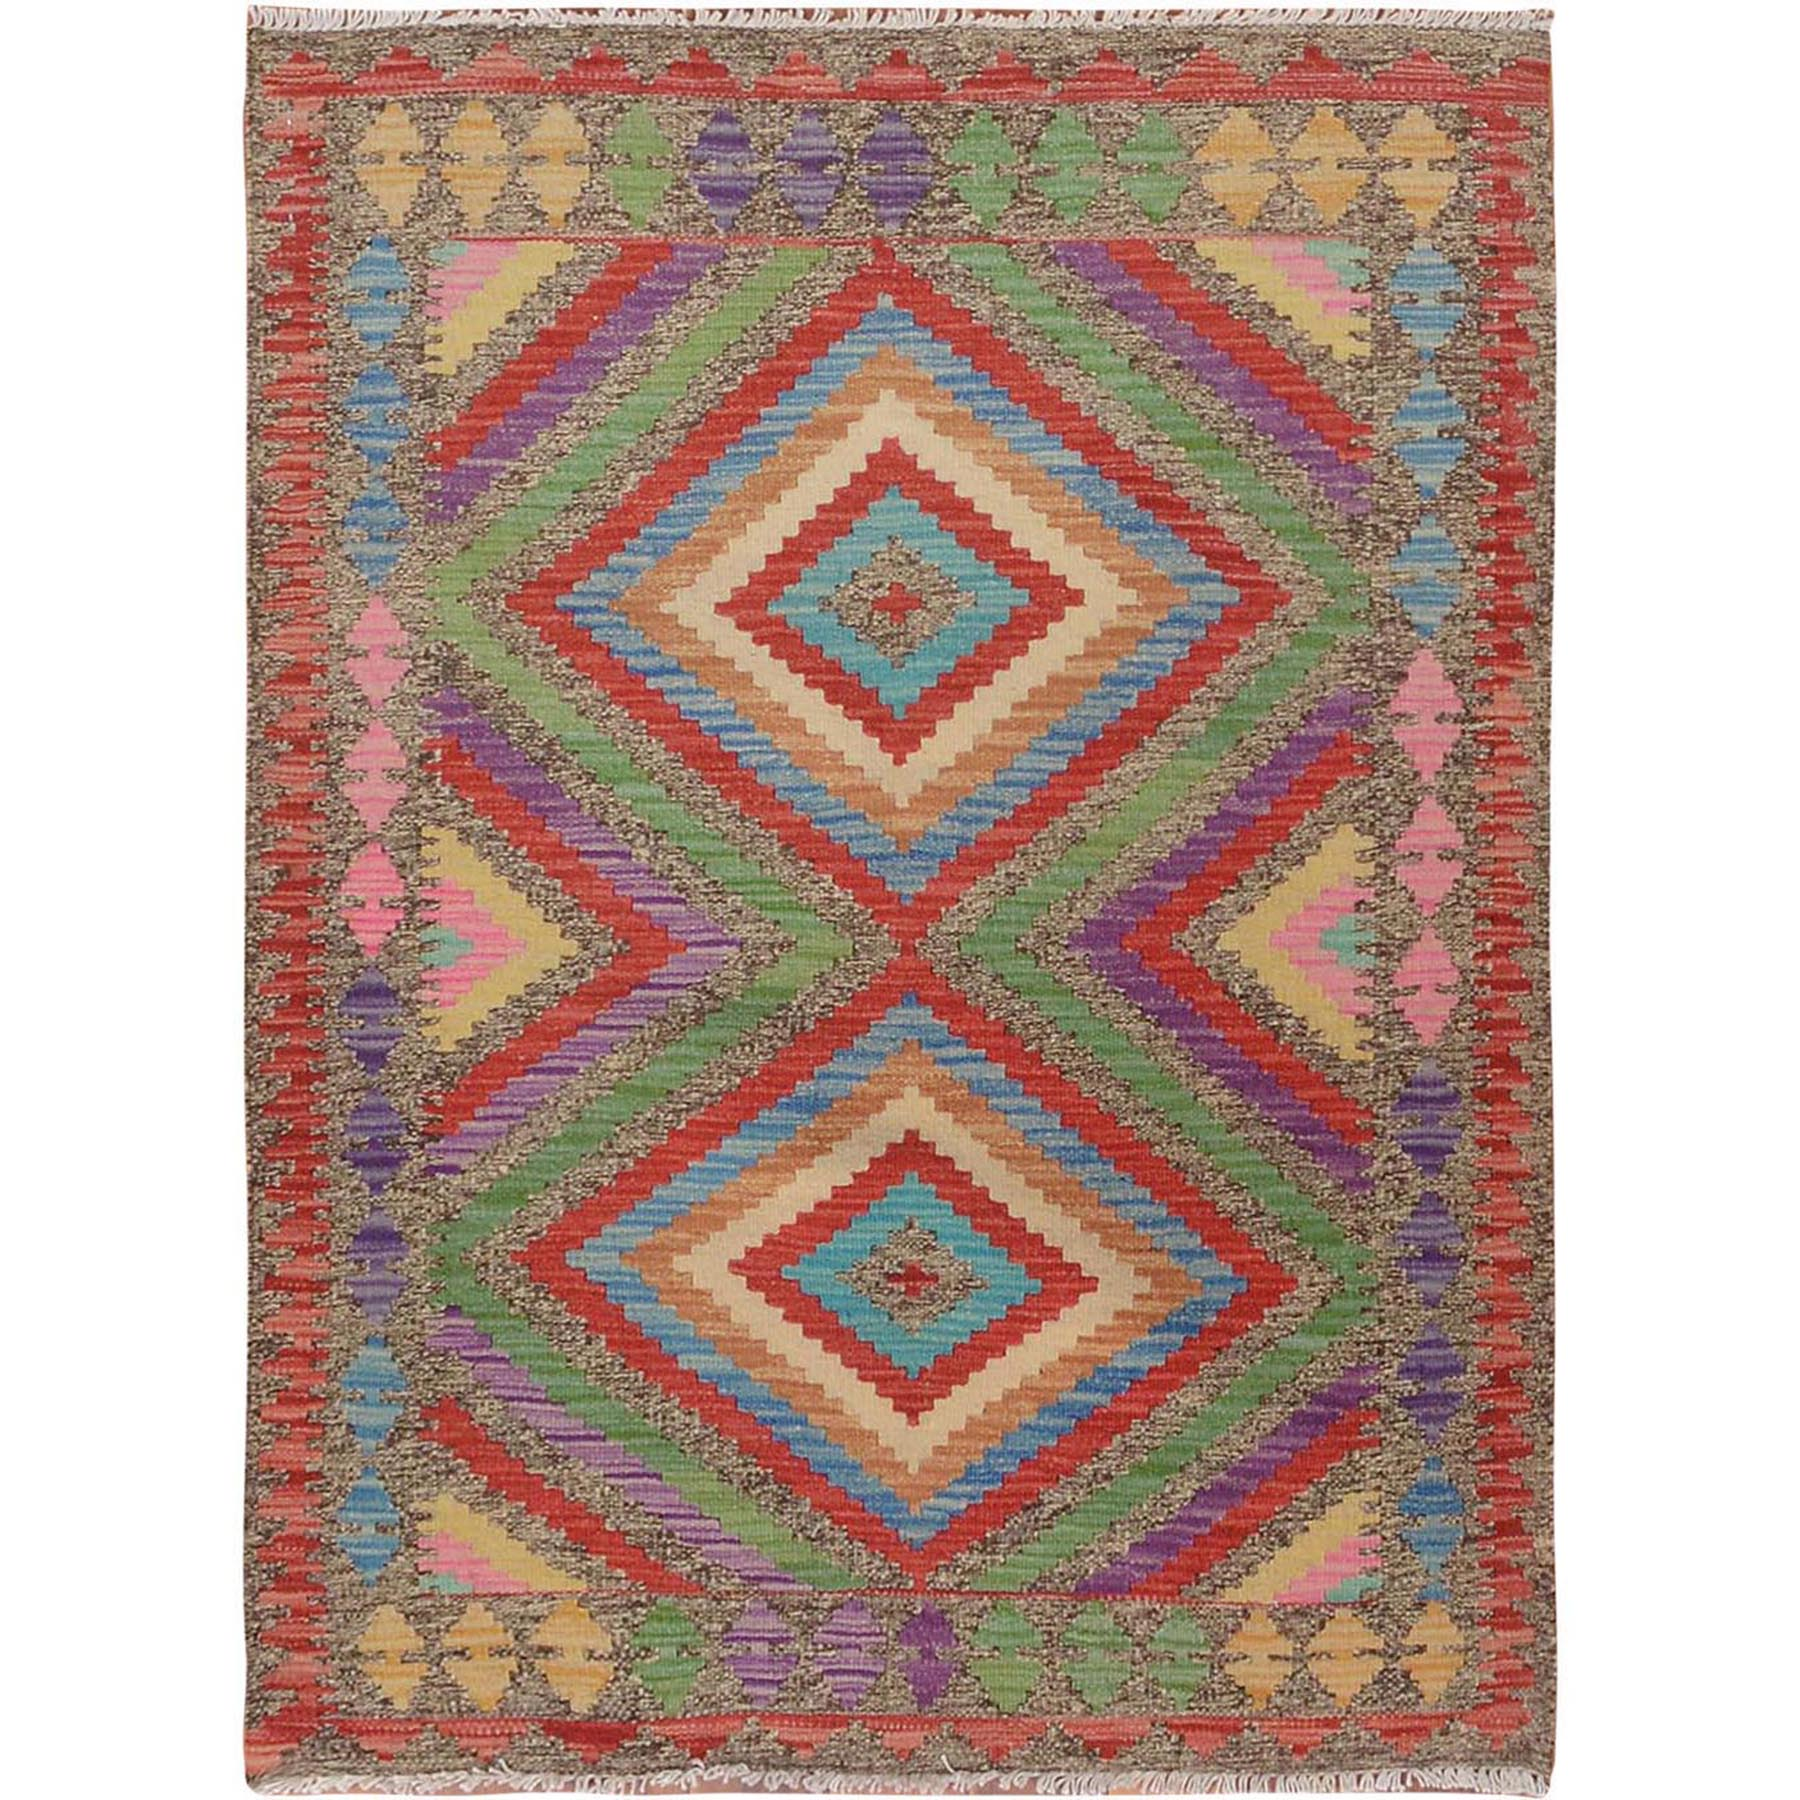 "2'9""x3'9"" Colorful Reversible Geometric Design Afghan Kilim Flat Weave Pure Wool Hand Woven Oriental Rug"